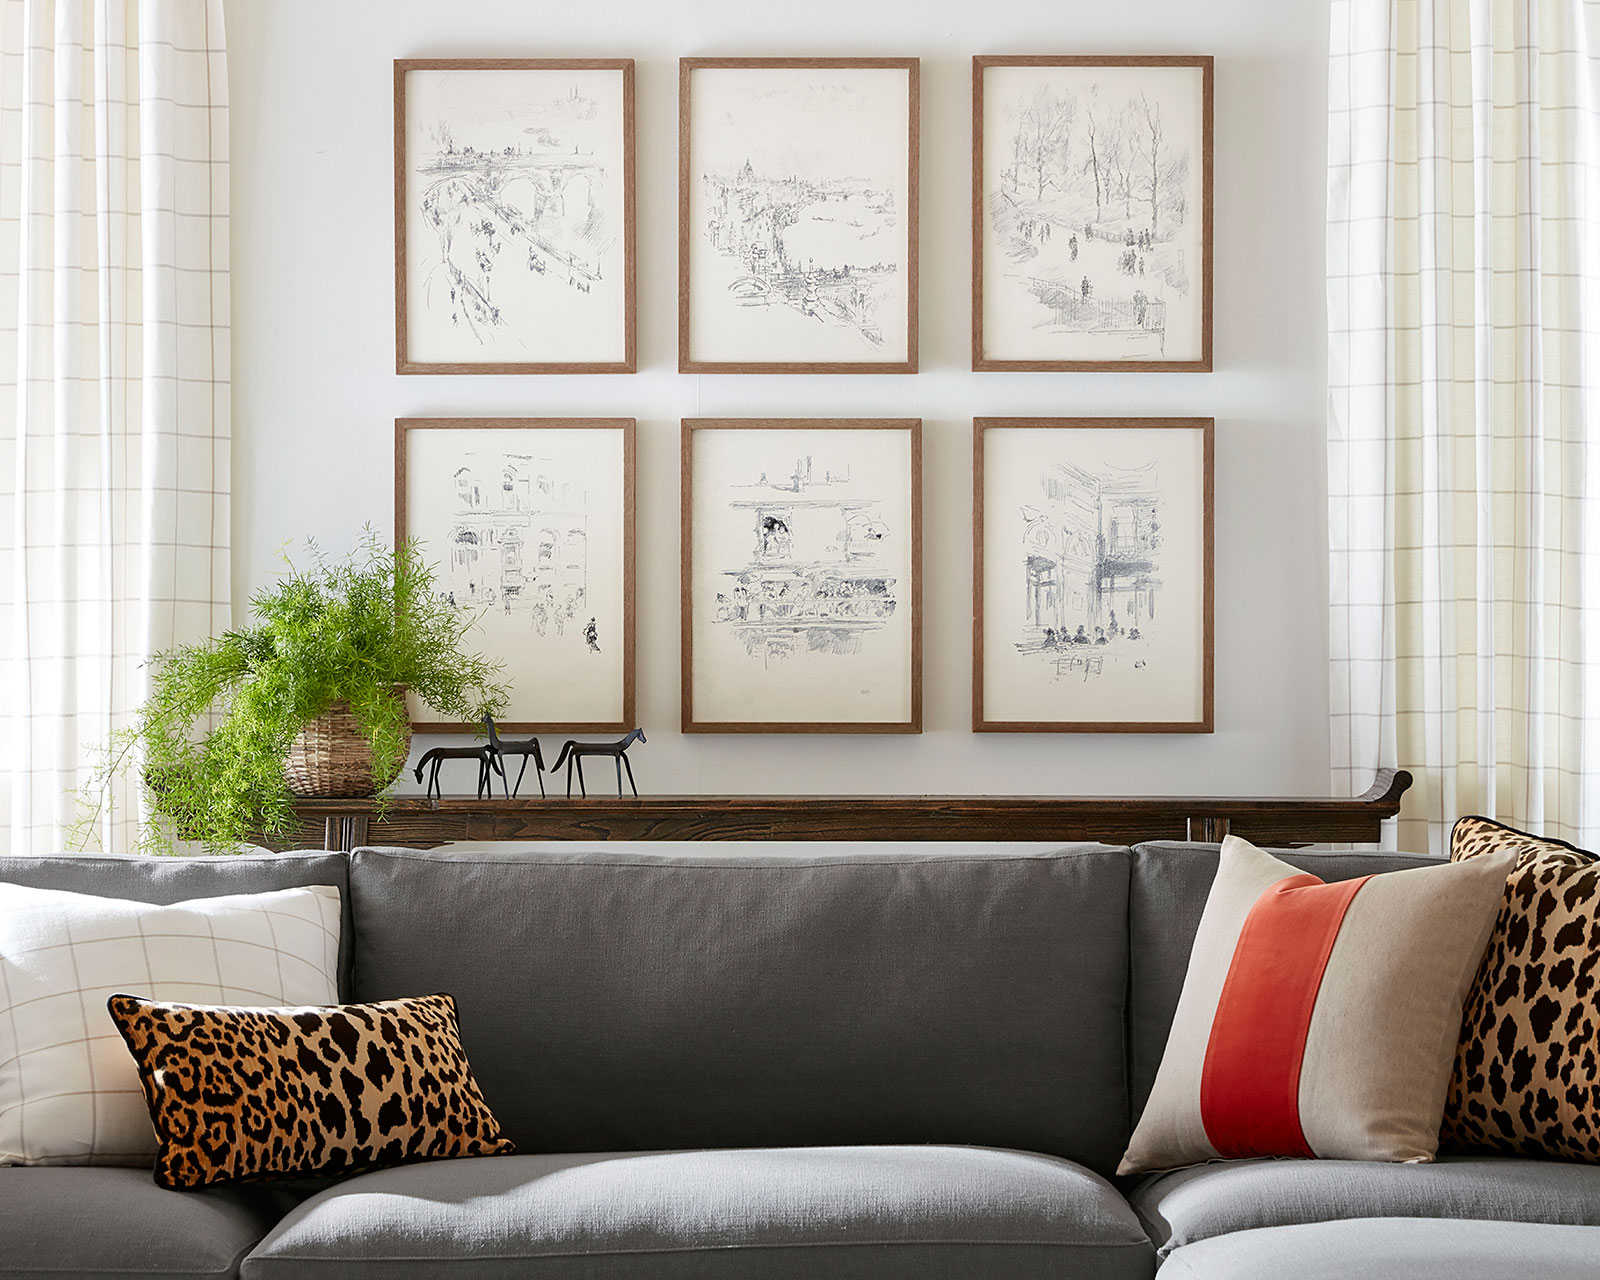 Hanging Wall Art Complete Guide How To Decorate